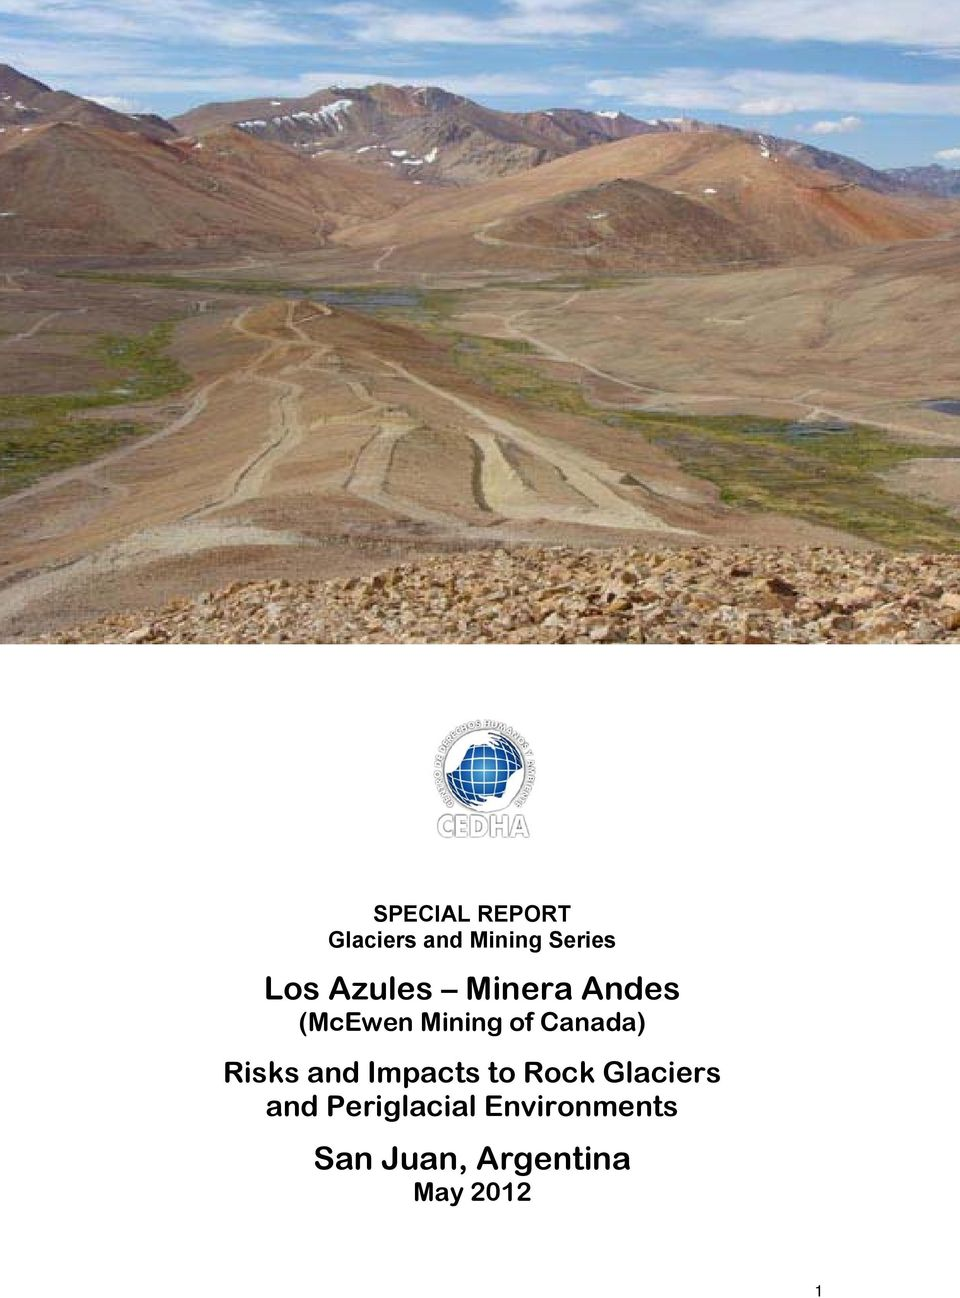 Risks and Impacts to Rock Glaciers and